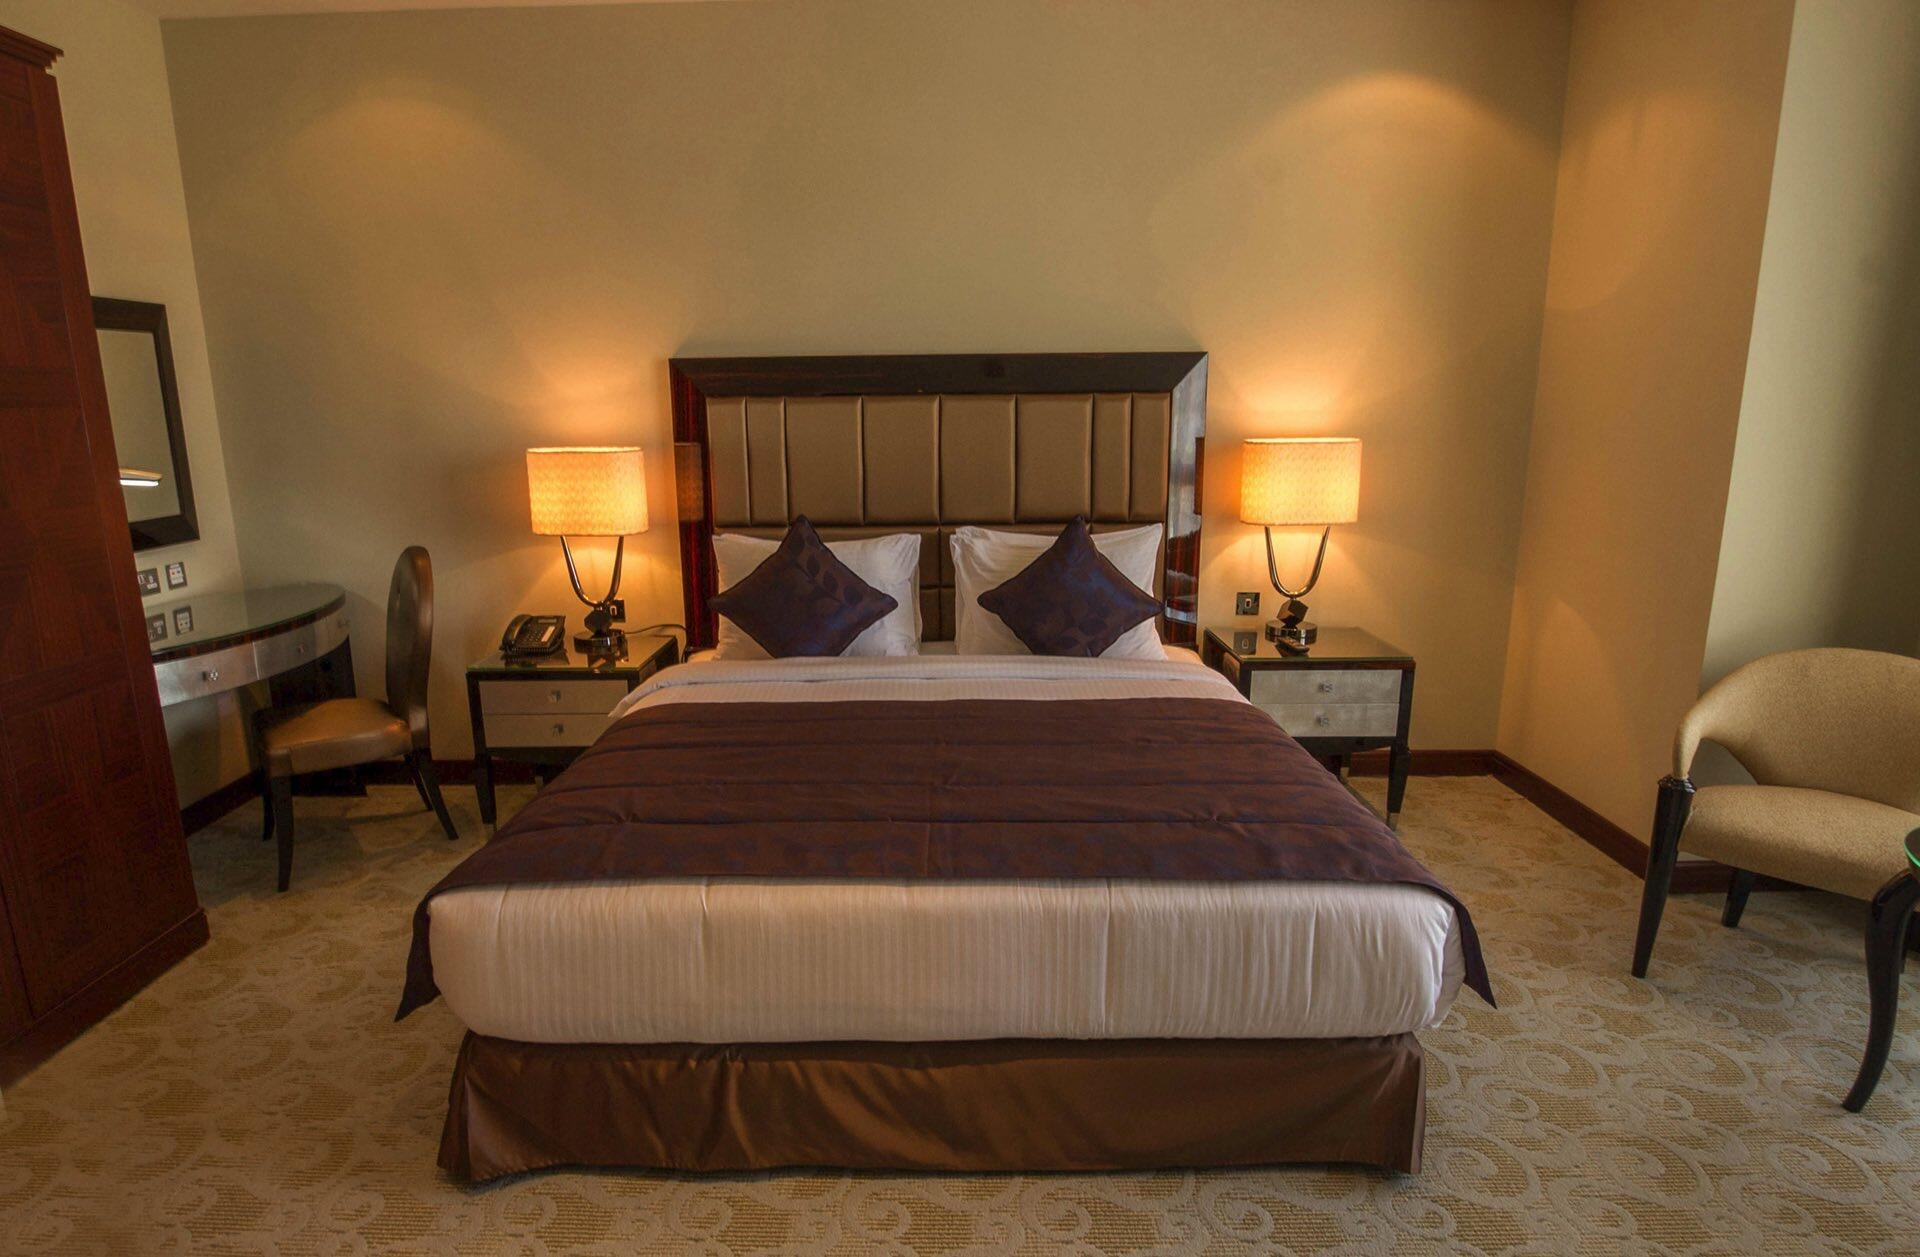 Executive Suite facing Bed